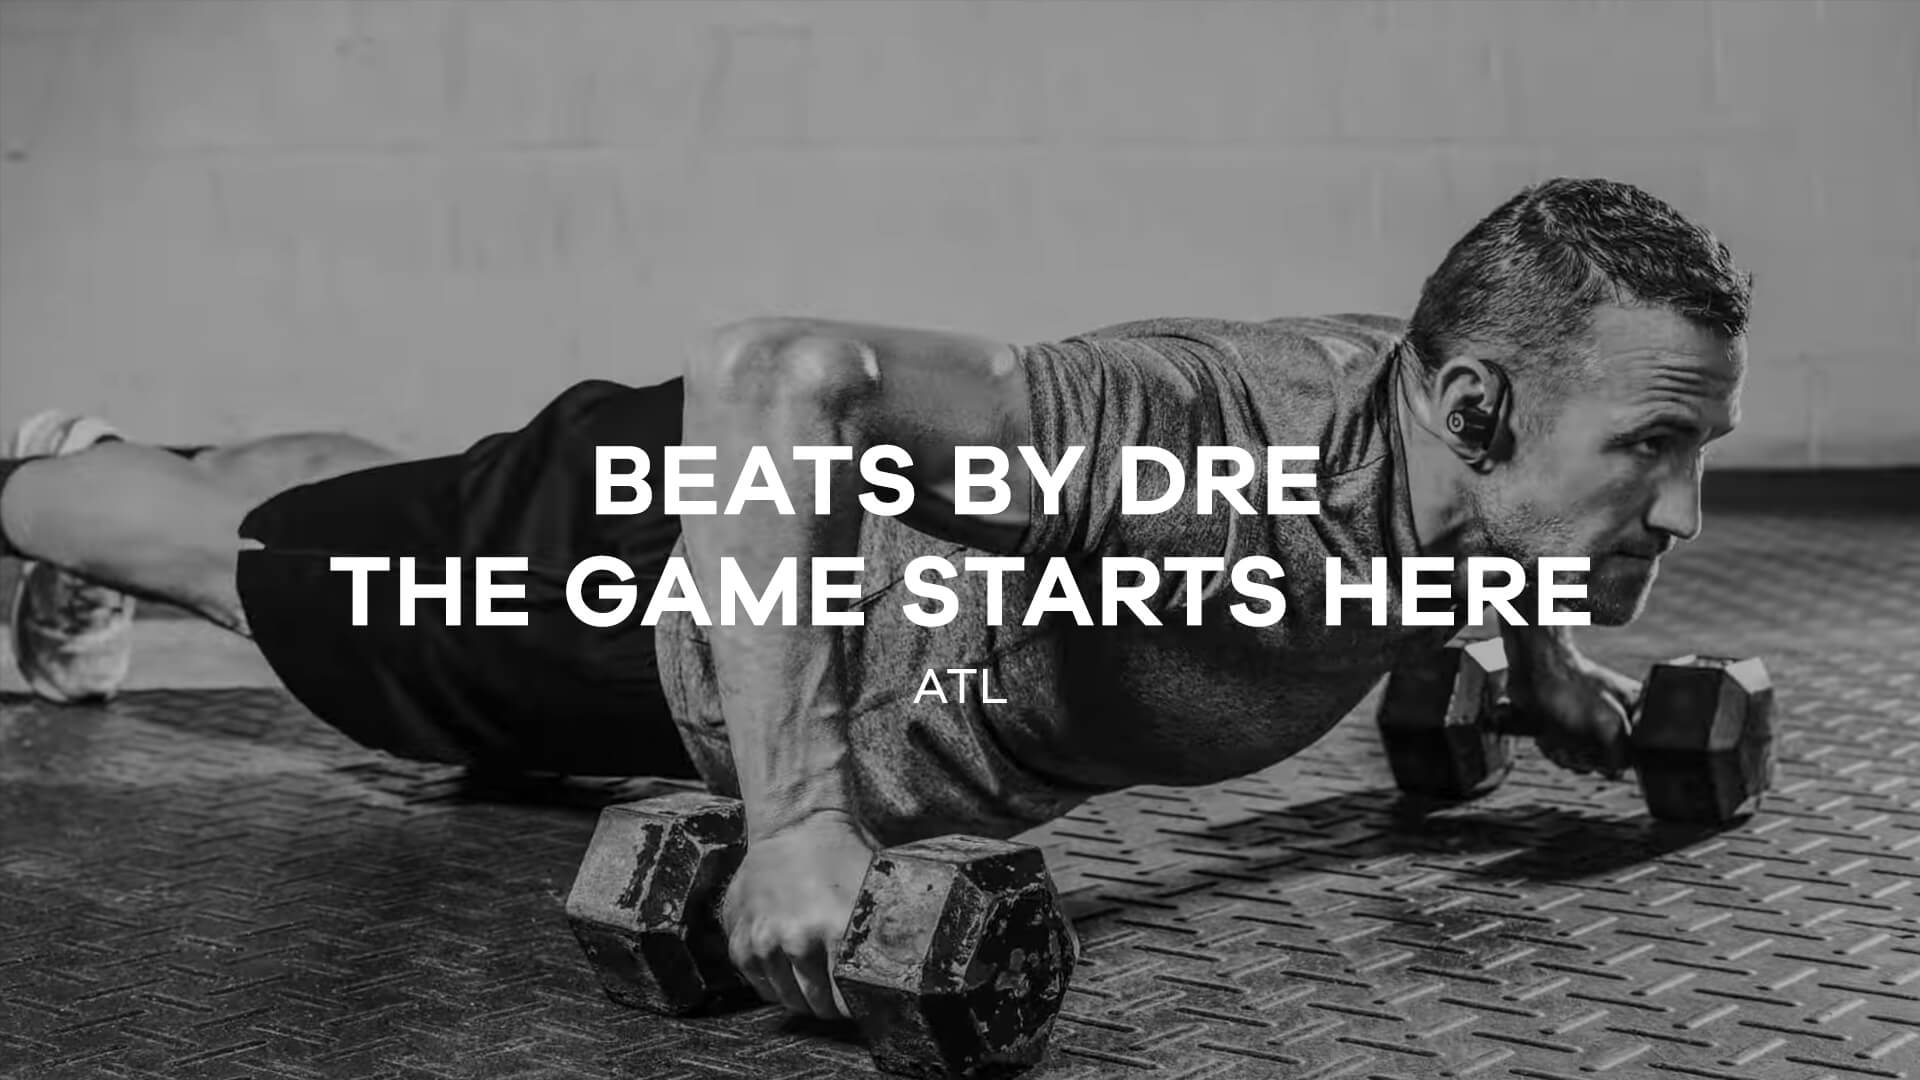 Beats By Dre<br/>The Game Starts Here